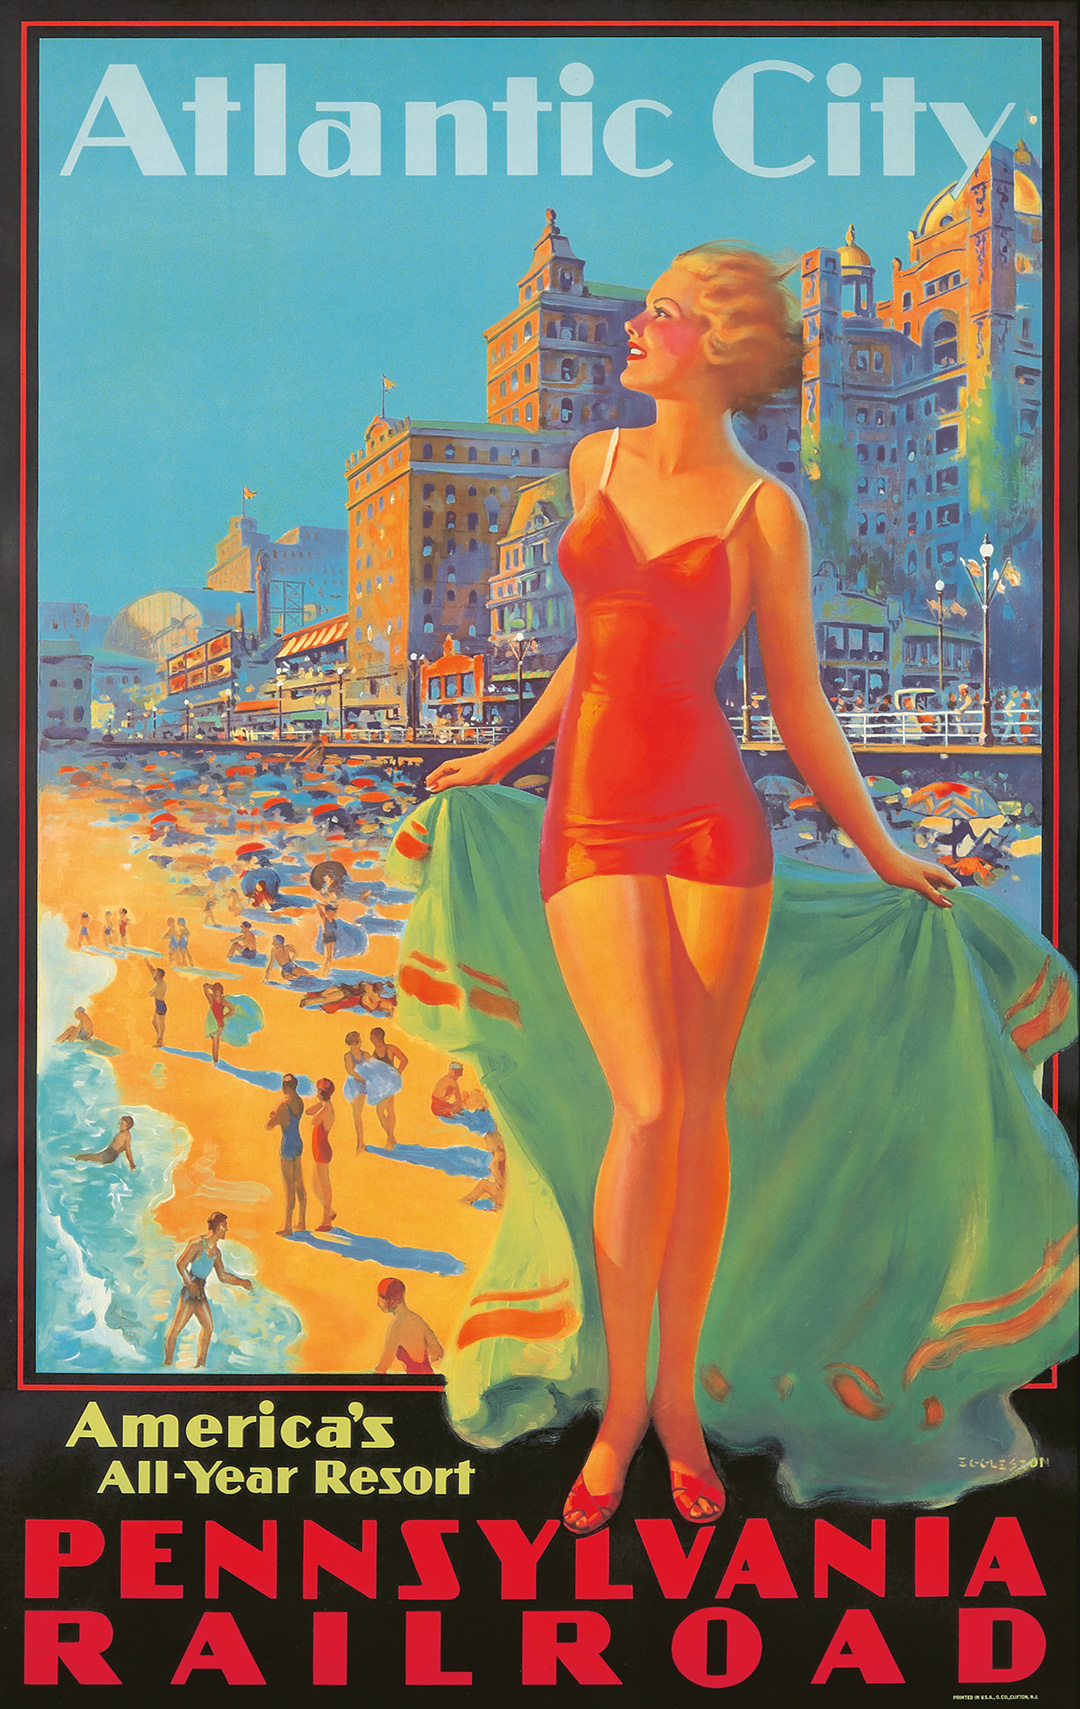 323. Pennsylvania Railroad / Atlantic City.  ca. 1935.